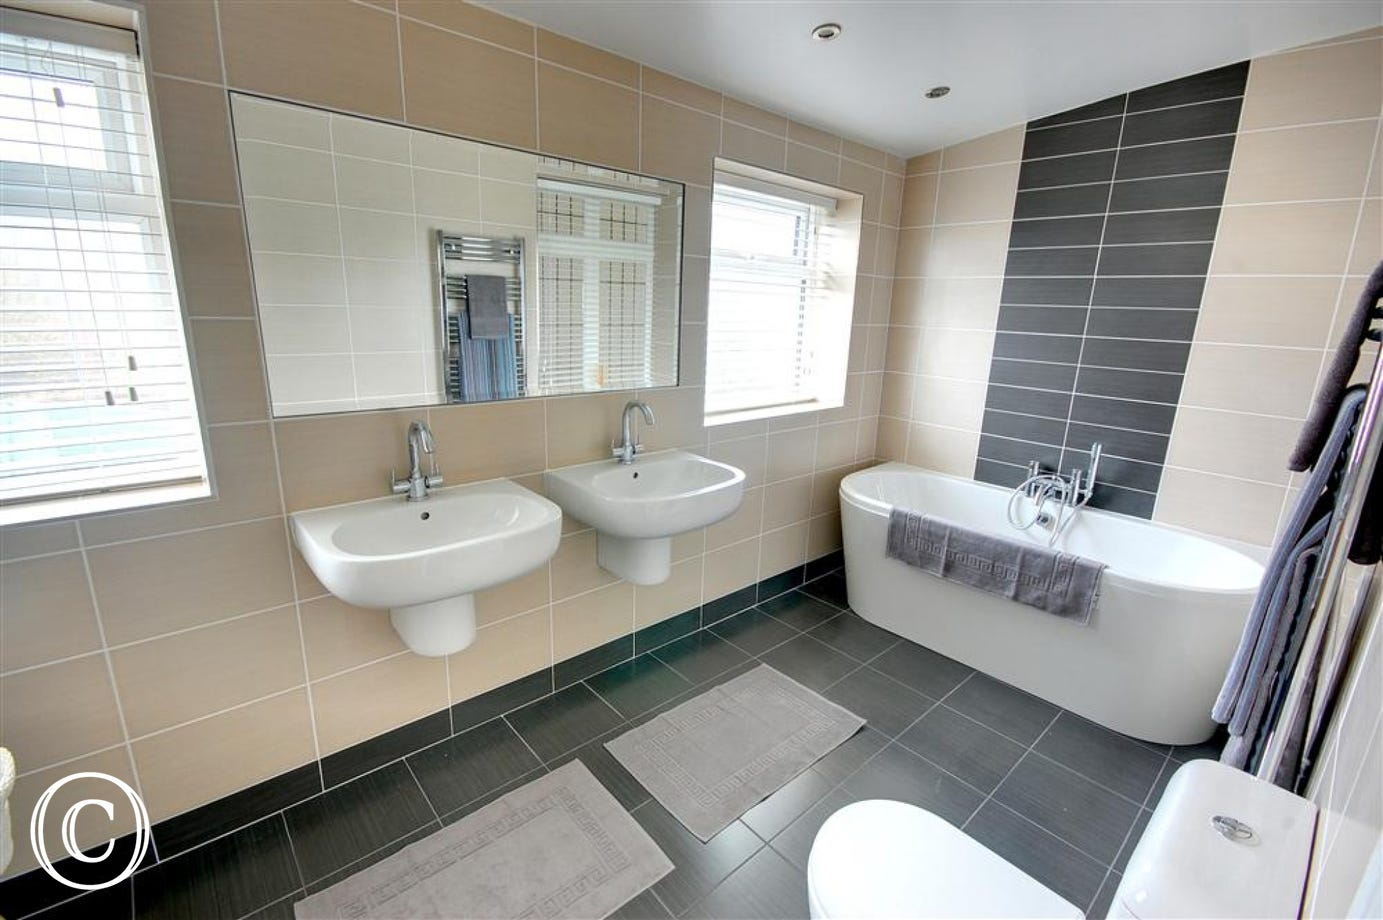 The family bathroom is very spacious and even offers the luxury of two washbasins.